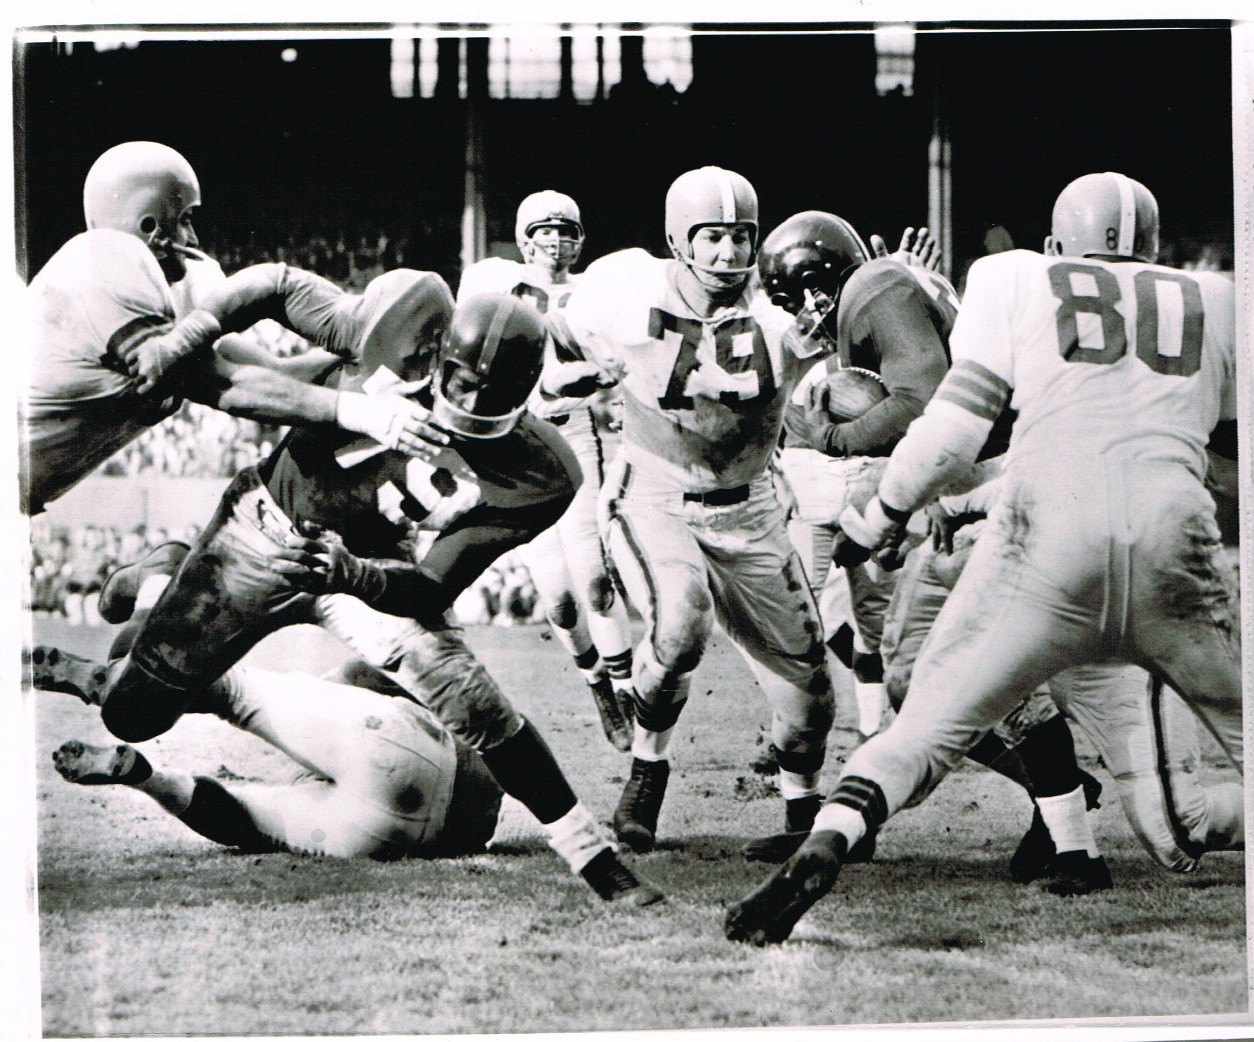 Roosevelt Brown, New York Giants (October 31, 1954)